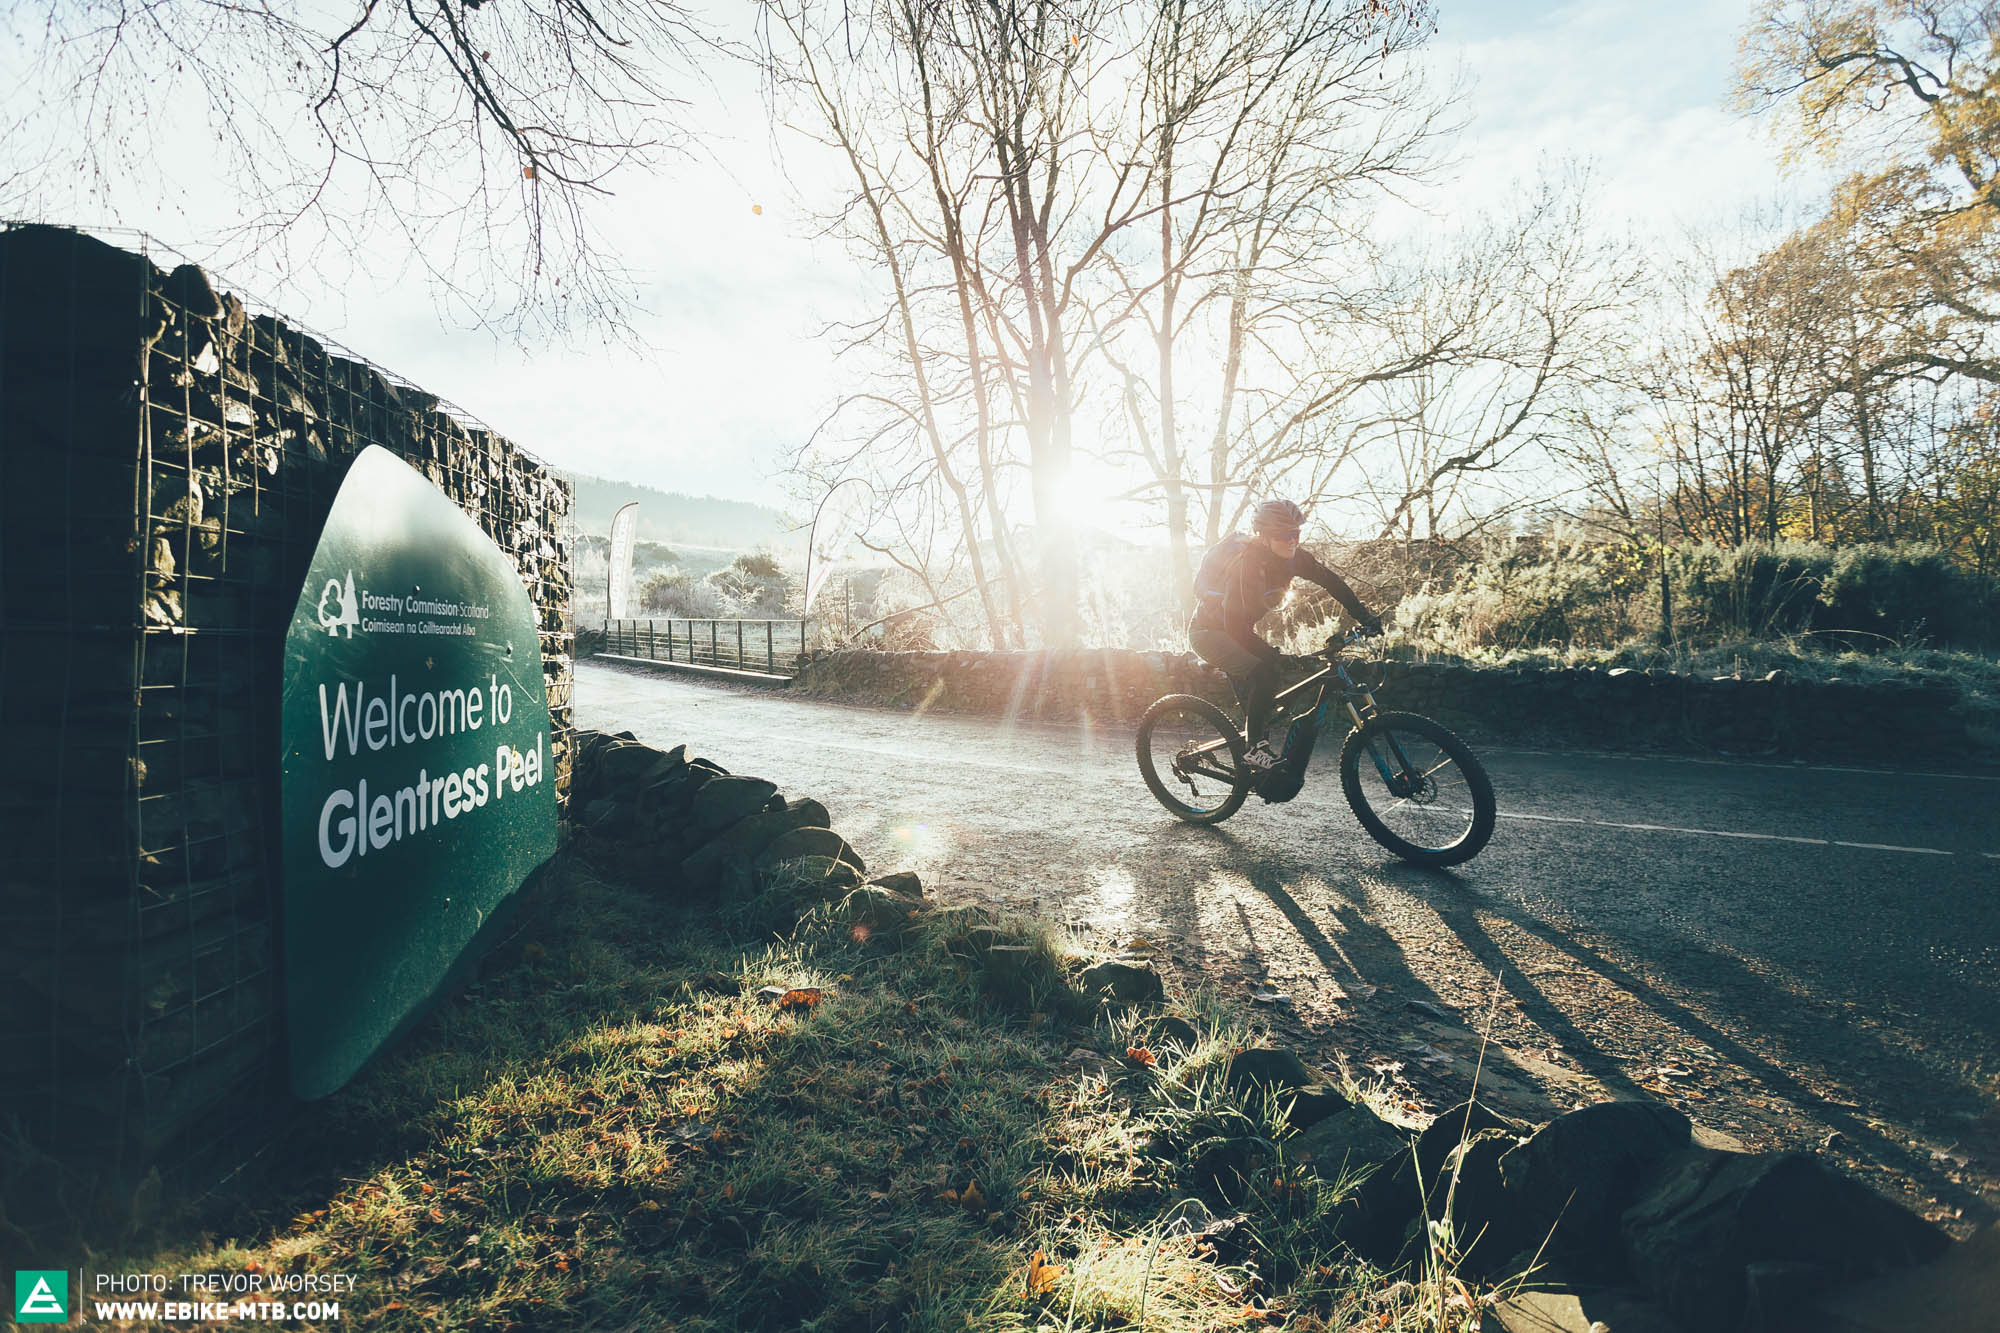 Can an E-MTB Ride Every Trail at Glentress in a Single Charge? | E